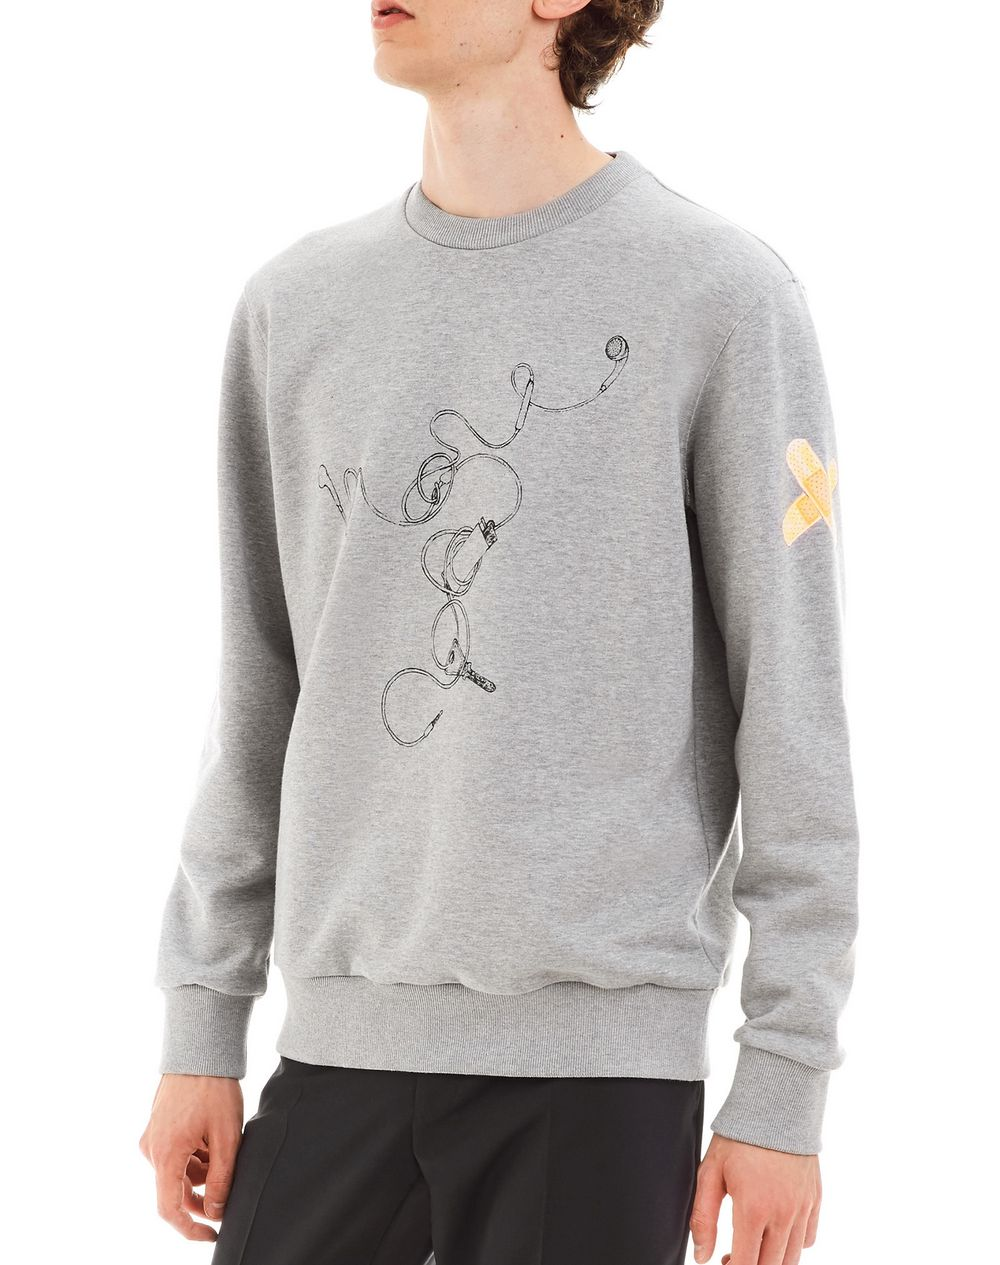 """HEADPHONES"" SWEATSHIRT BY CÉDRIC RIVRAIN - Lanvin"